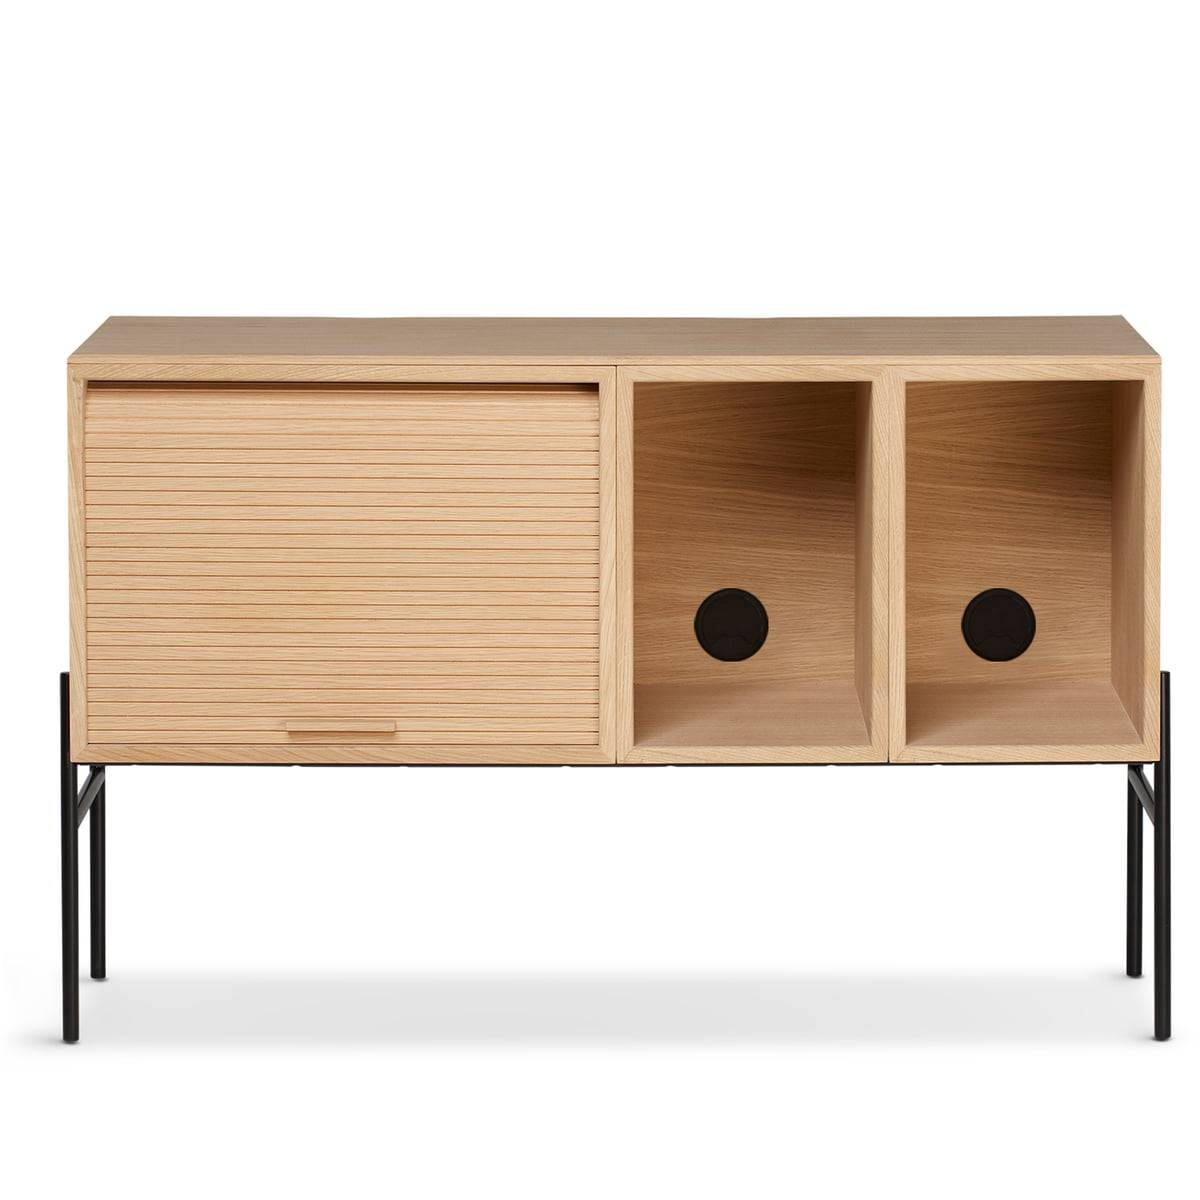 Northern - Hifive 100 sideboard, oak